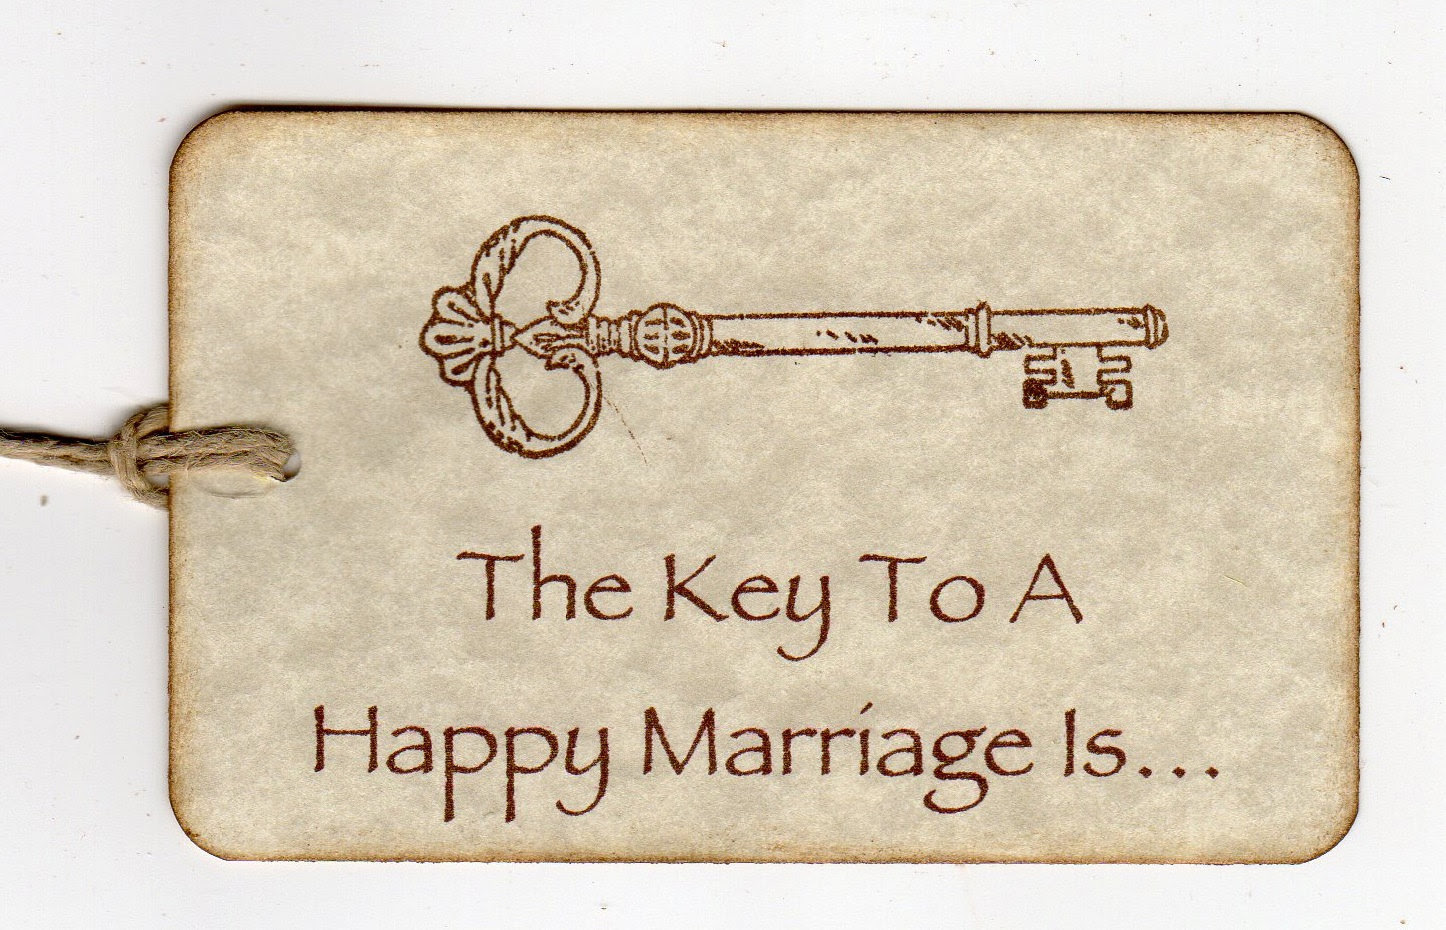 5 More Keys To Grow A Happy Marriage